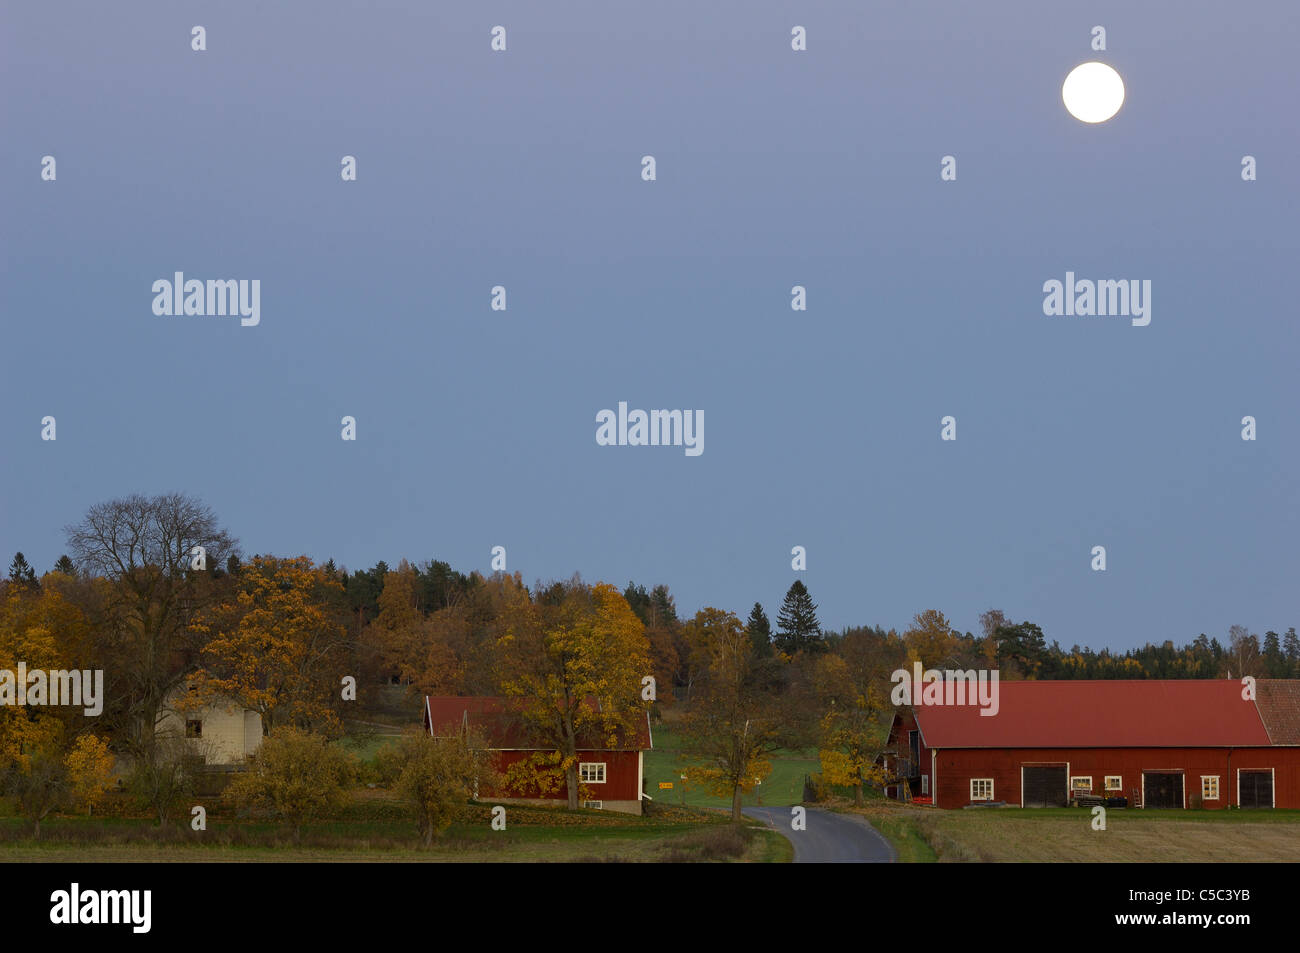 Farms and country houses below a full moon on clear sky - Stock Image